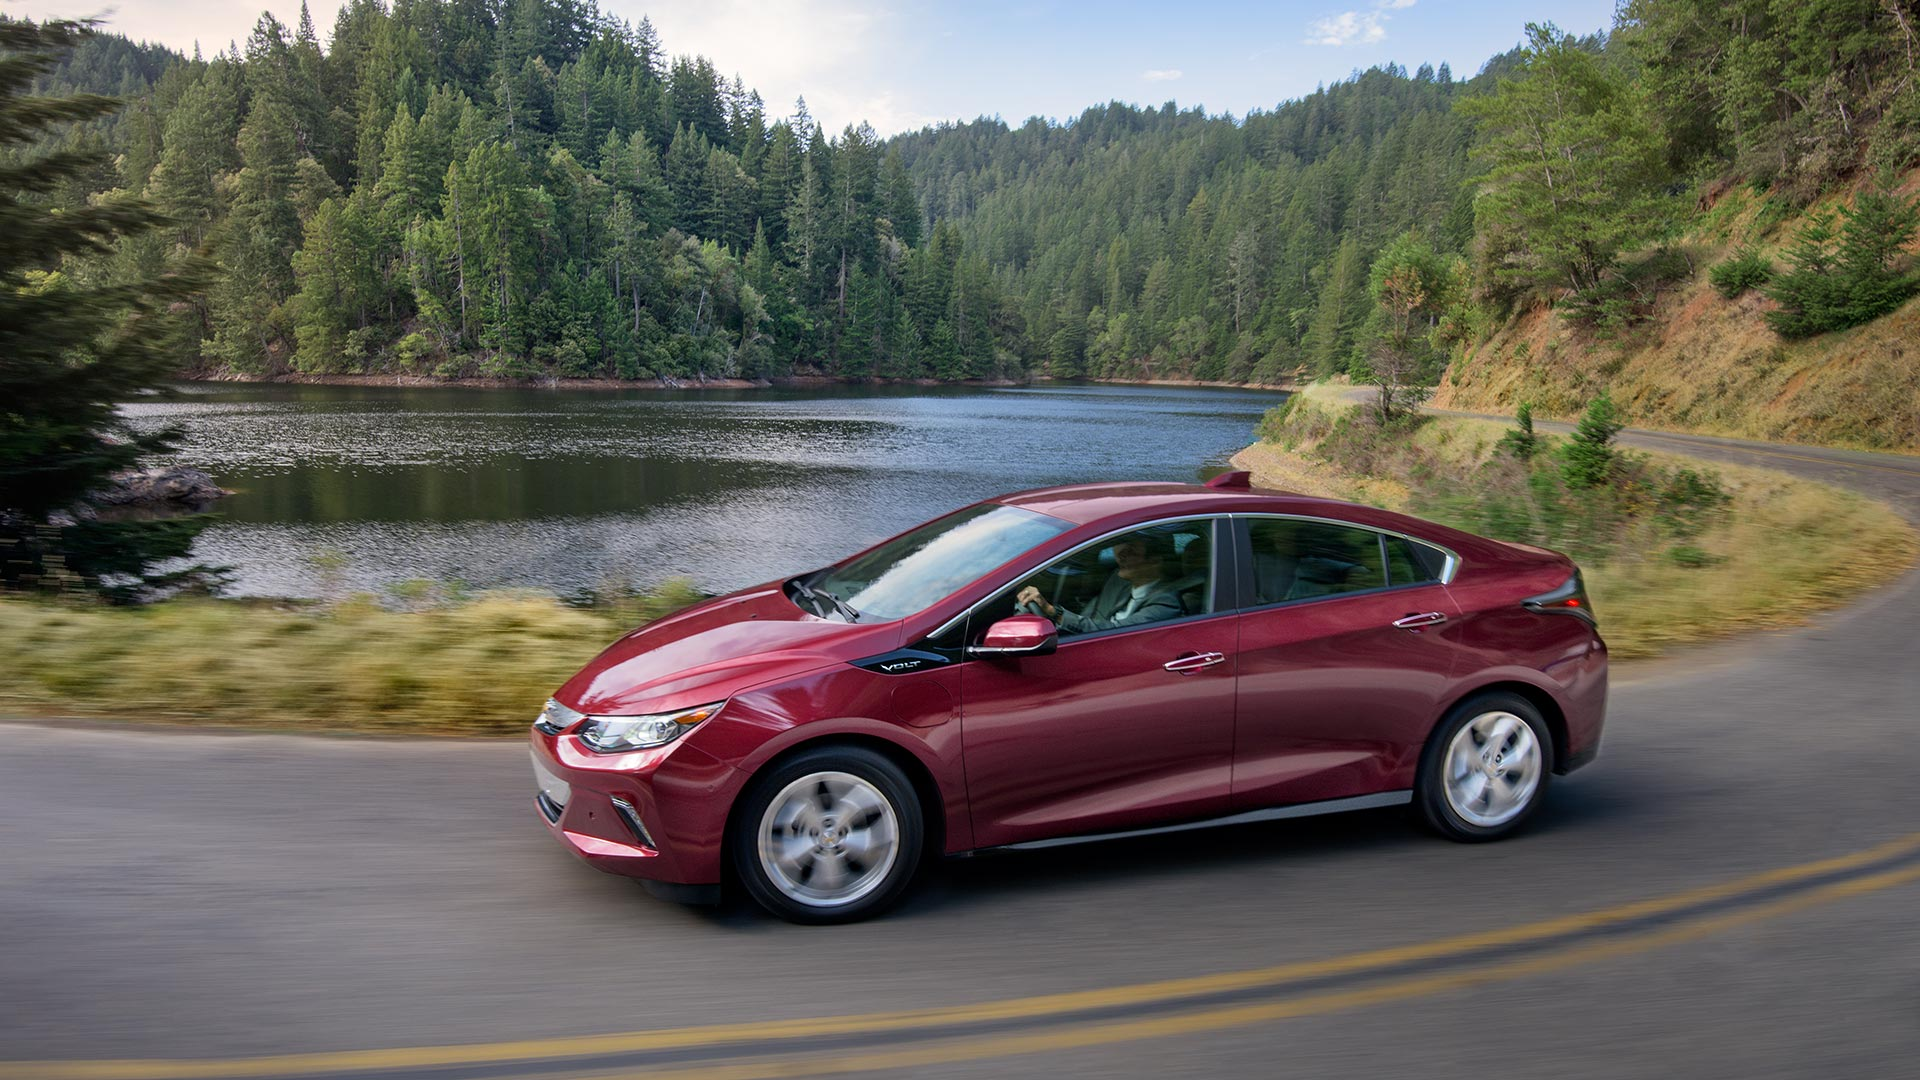 2017 chevrolet volt range what is the range of the new chevy volt valley chevy. Black Bedroom Furniture Sets. Home Design Ideas